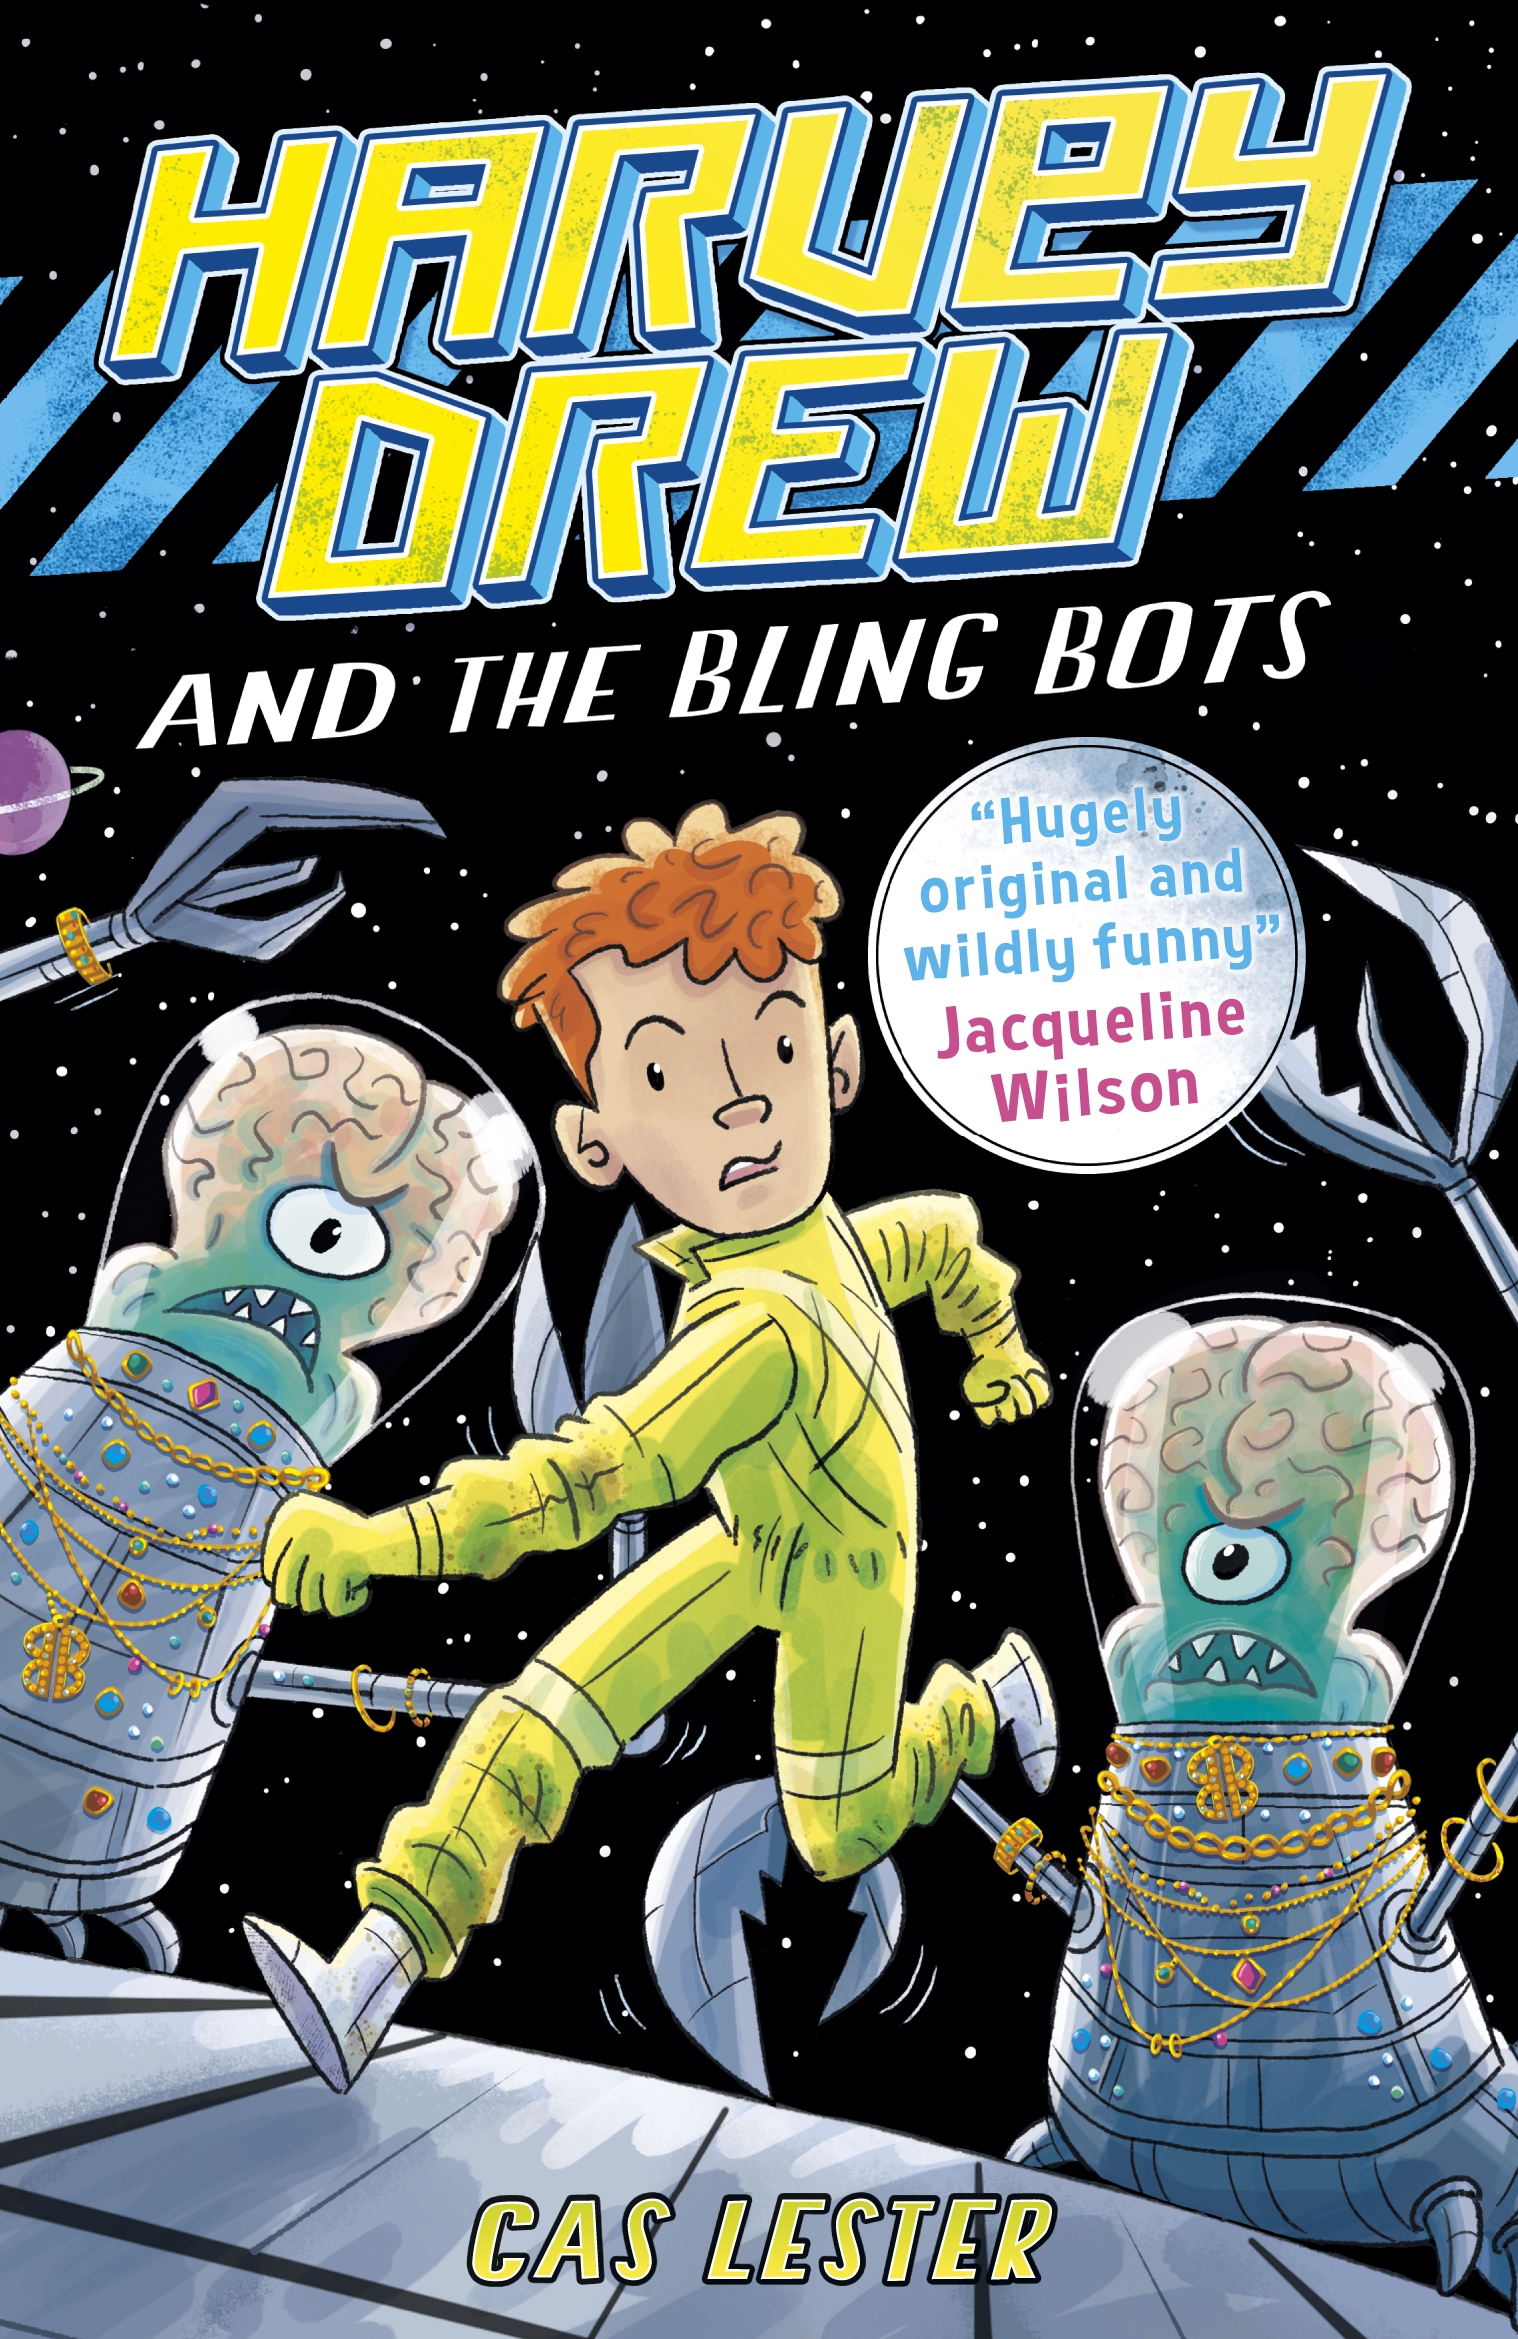 Harvey Drew and the Bling Bots by Cas Lester